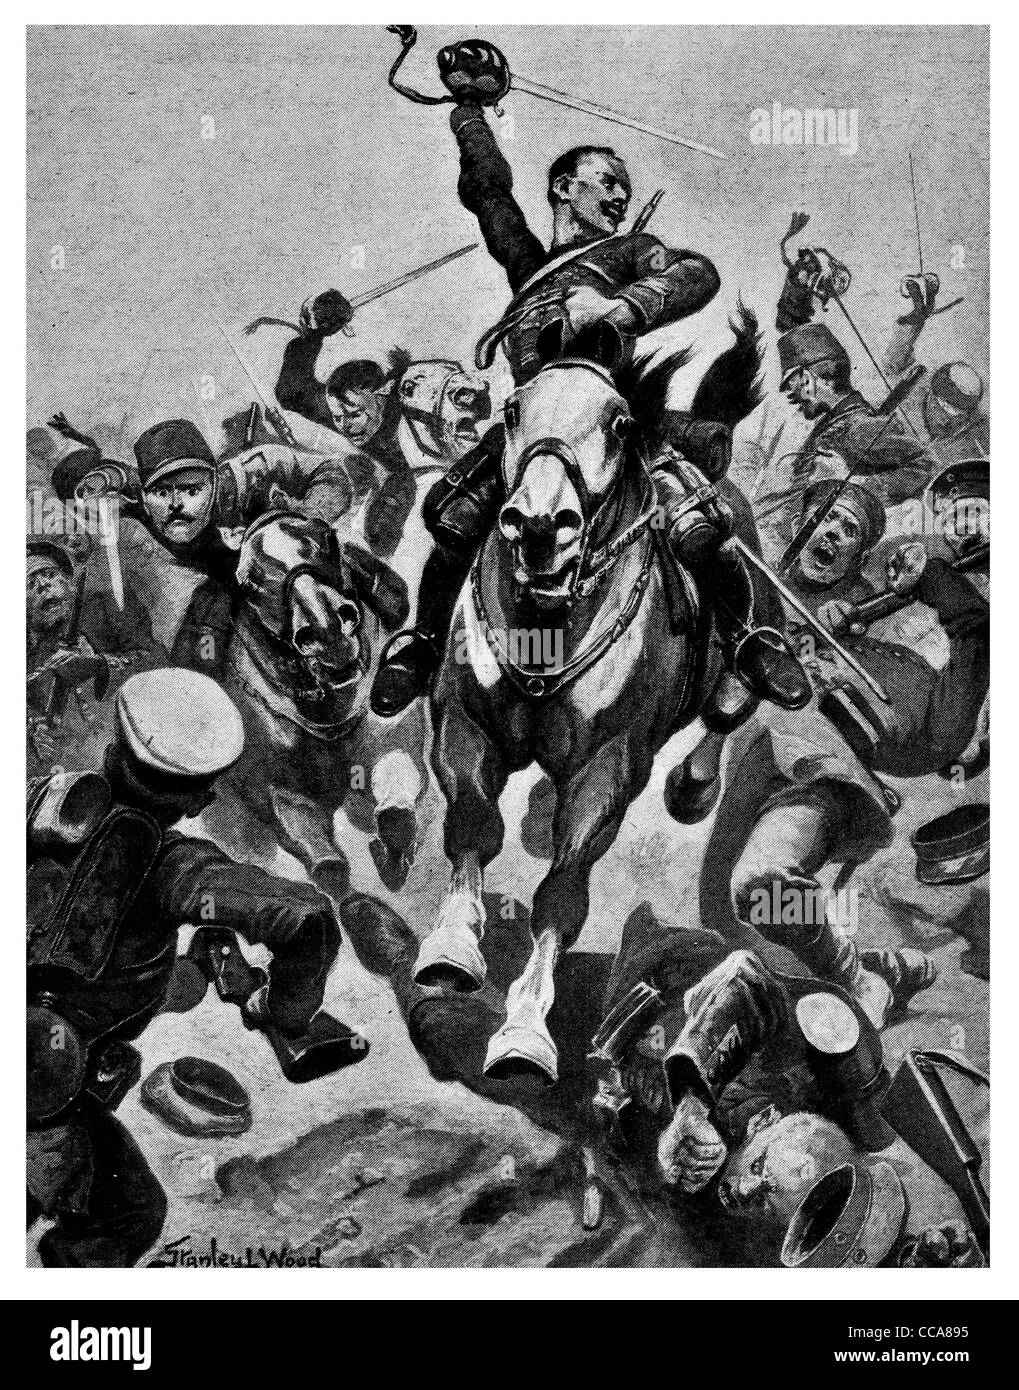 1916 French cavalry attacked 200 Germans with Sabers lance charge glory horse anger stab slash mortally wounded - Stock Image